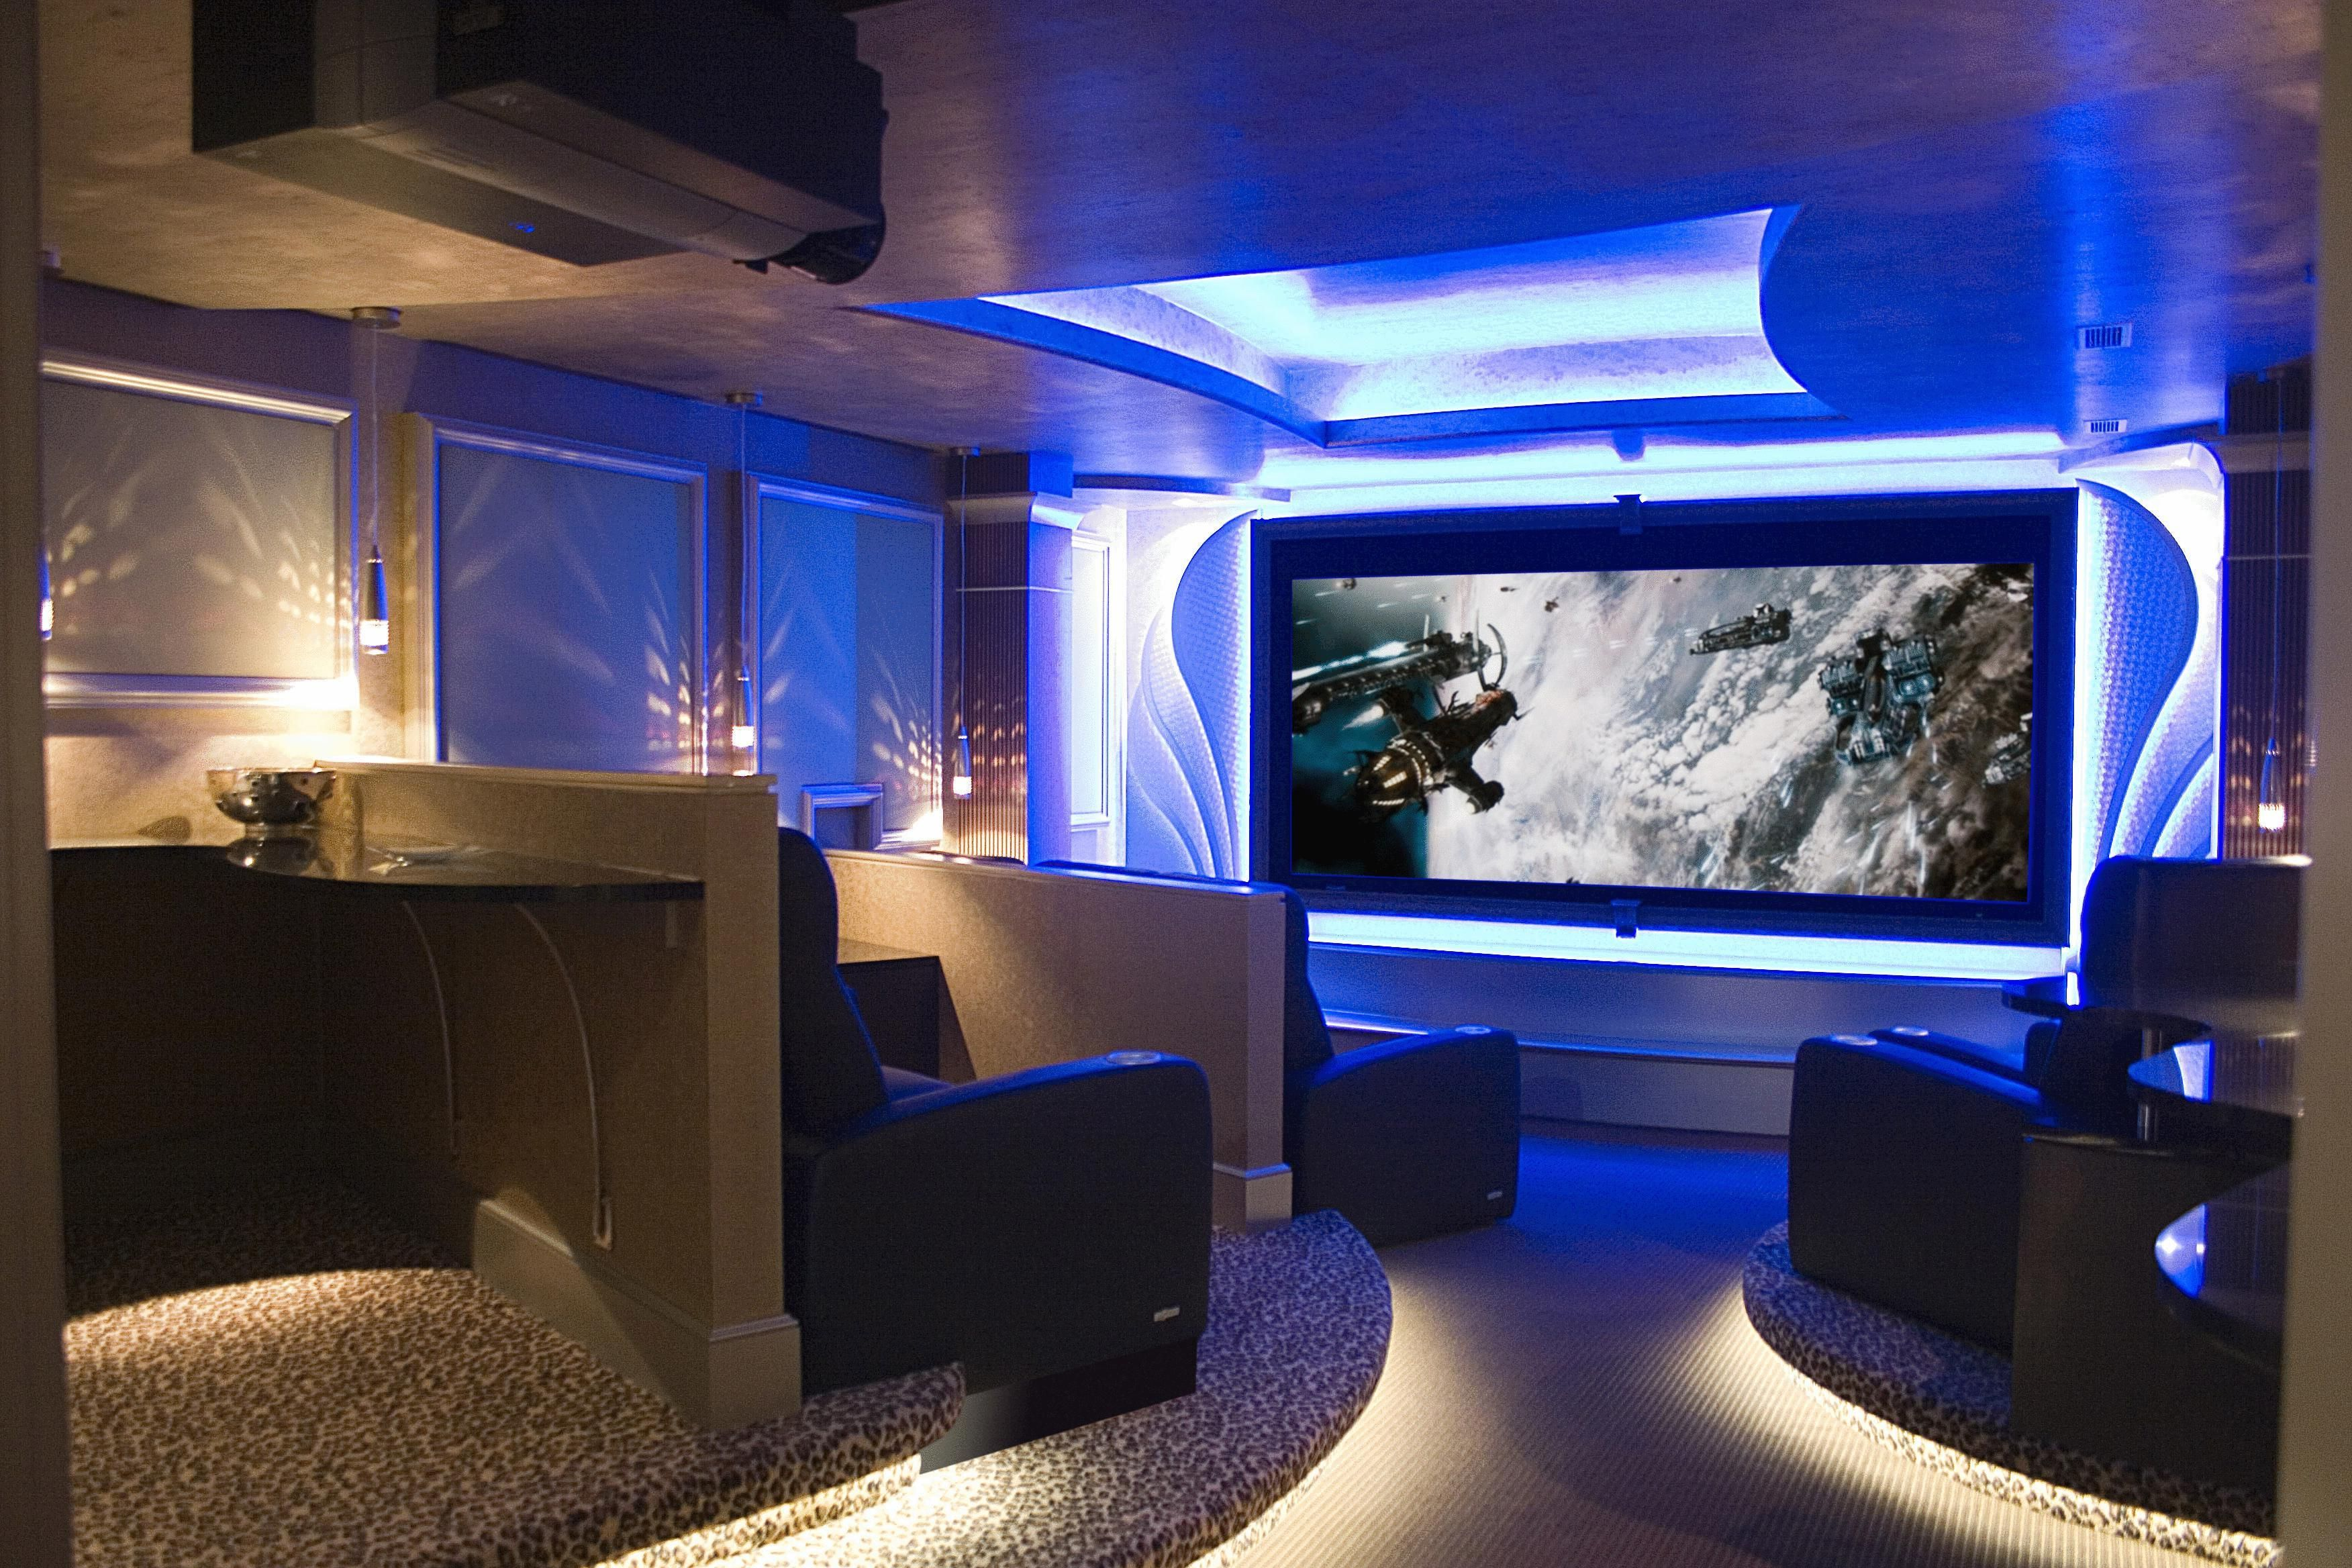 interior exciting basement home theater ideas home entertainment for family at basement with great blue lighting [ 3504 x 2336 Pixel ]